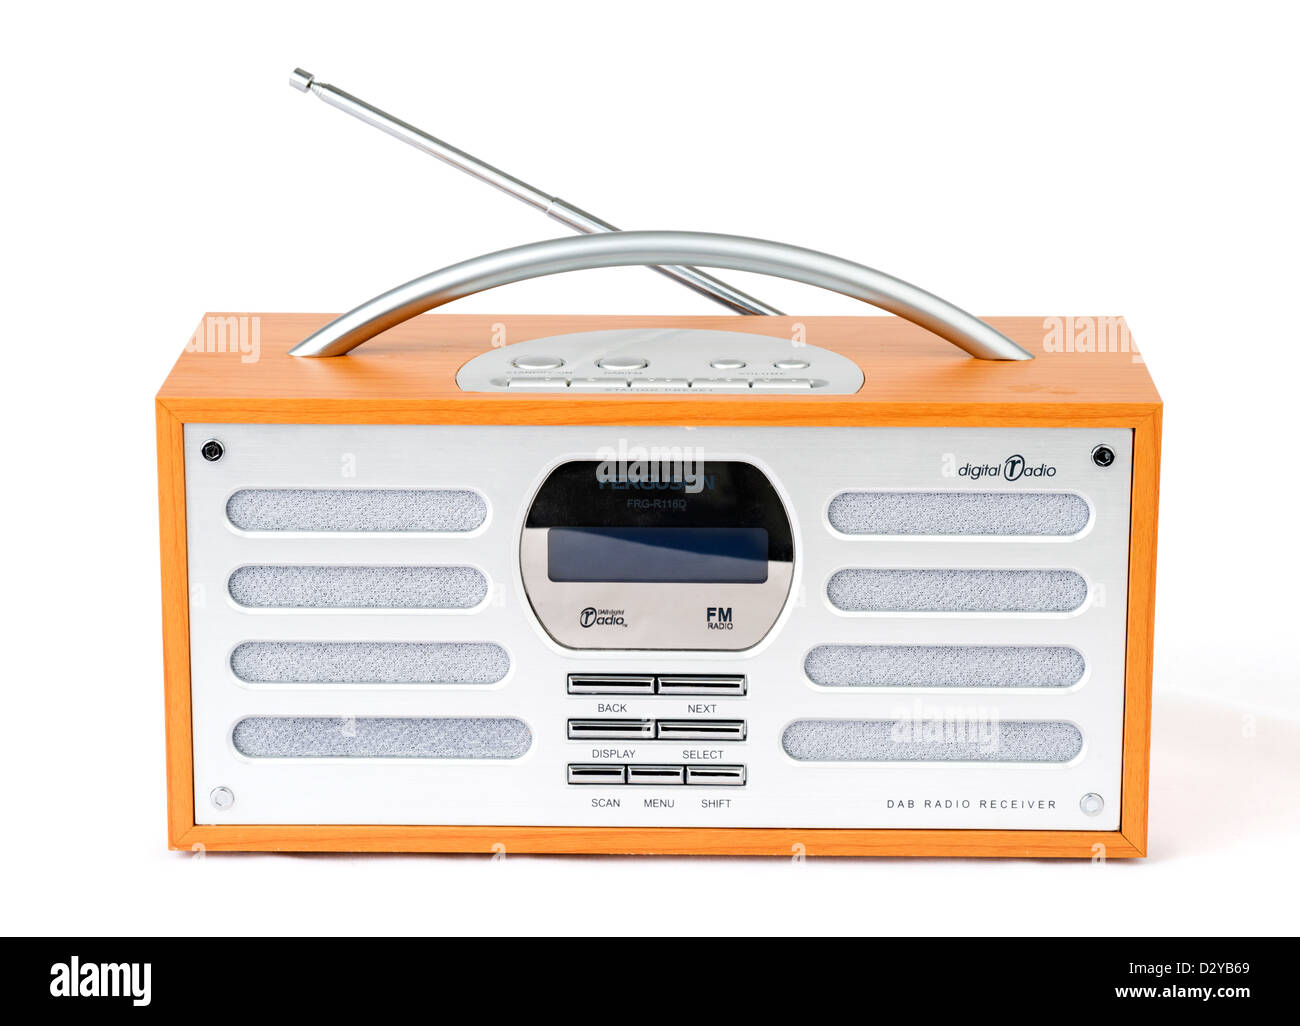 DAB-Digitalradio, UK Stockbild